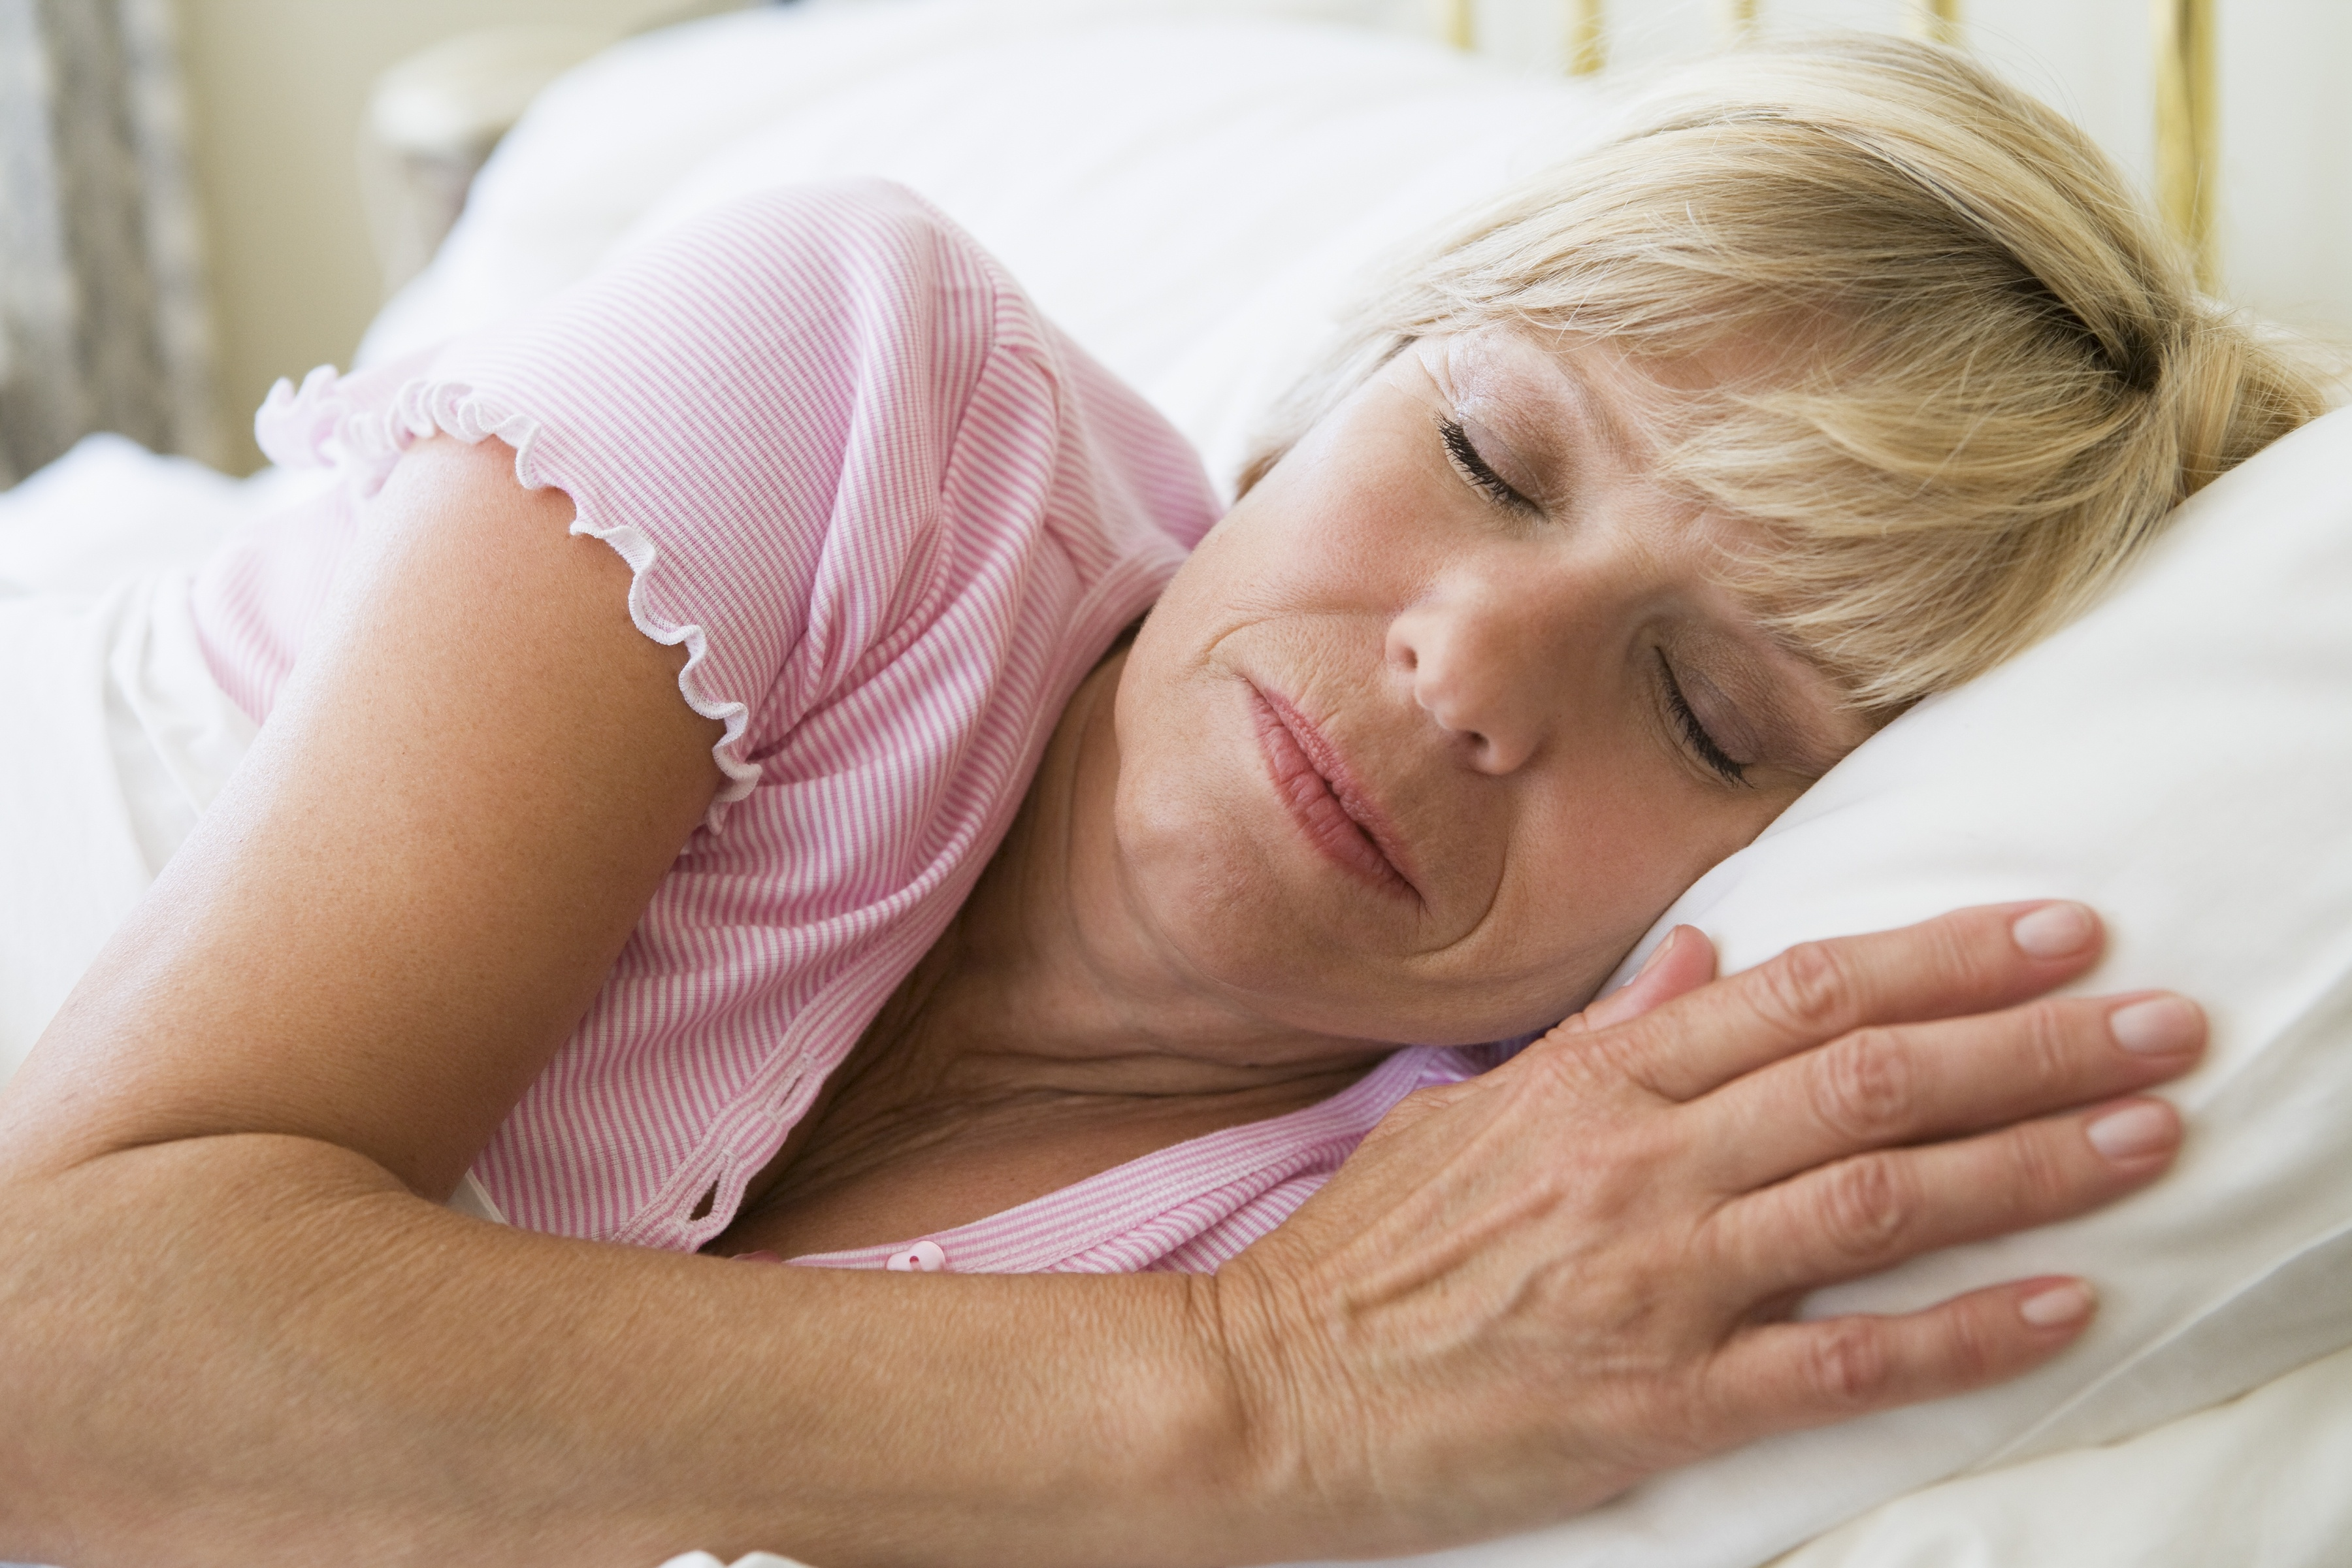 Oversleeping_Could_Be_an_Early_Sign_of_Alzheimers_Disease.jpg